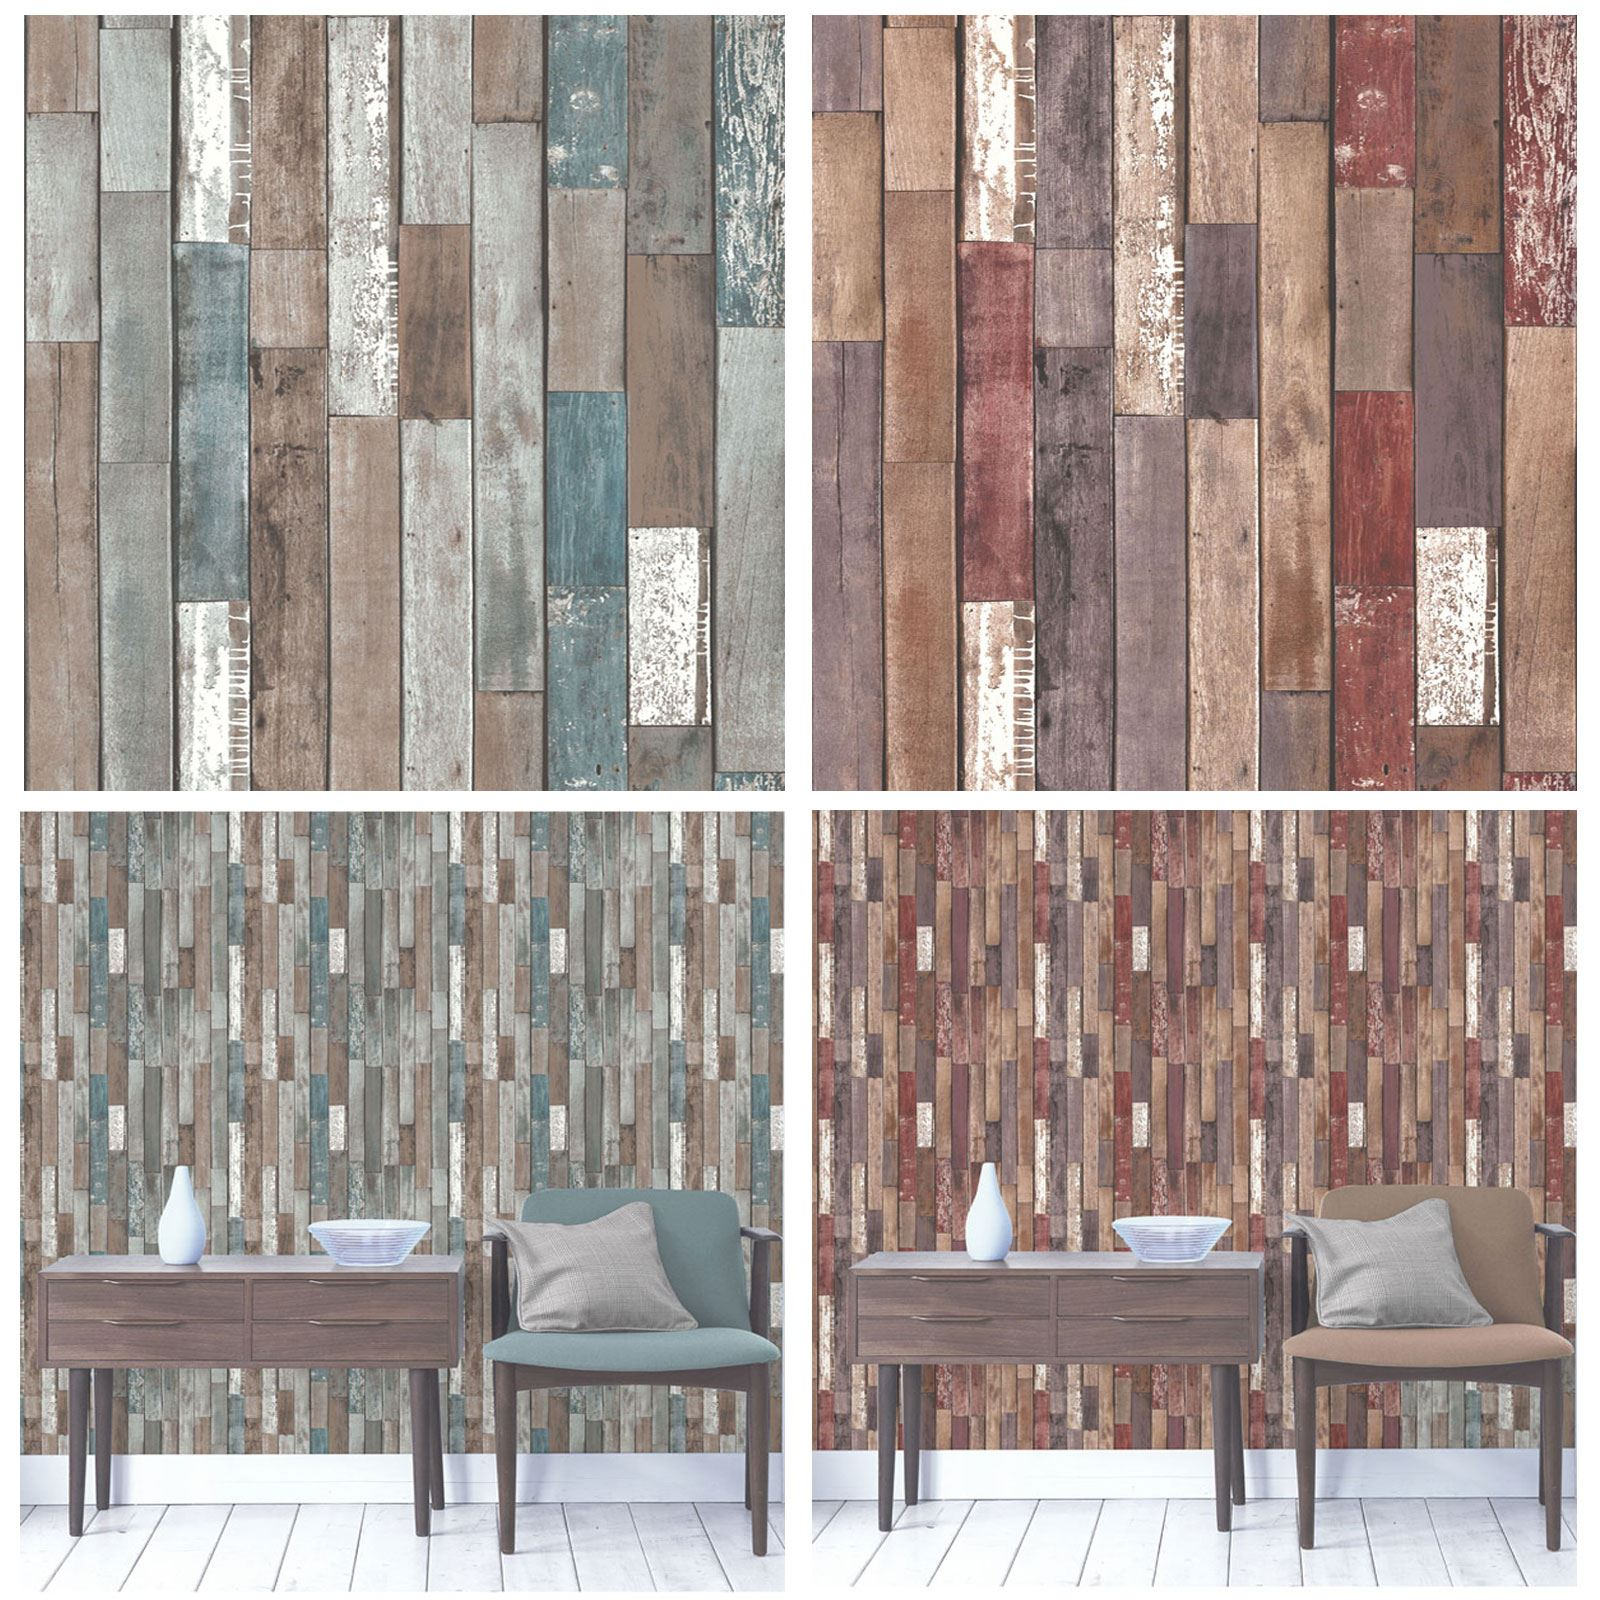 FINE DECOR RUSTIC EFFECT WOOD PLANKS WALLPAPER - BLUE ...